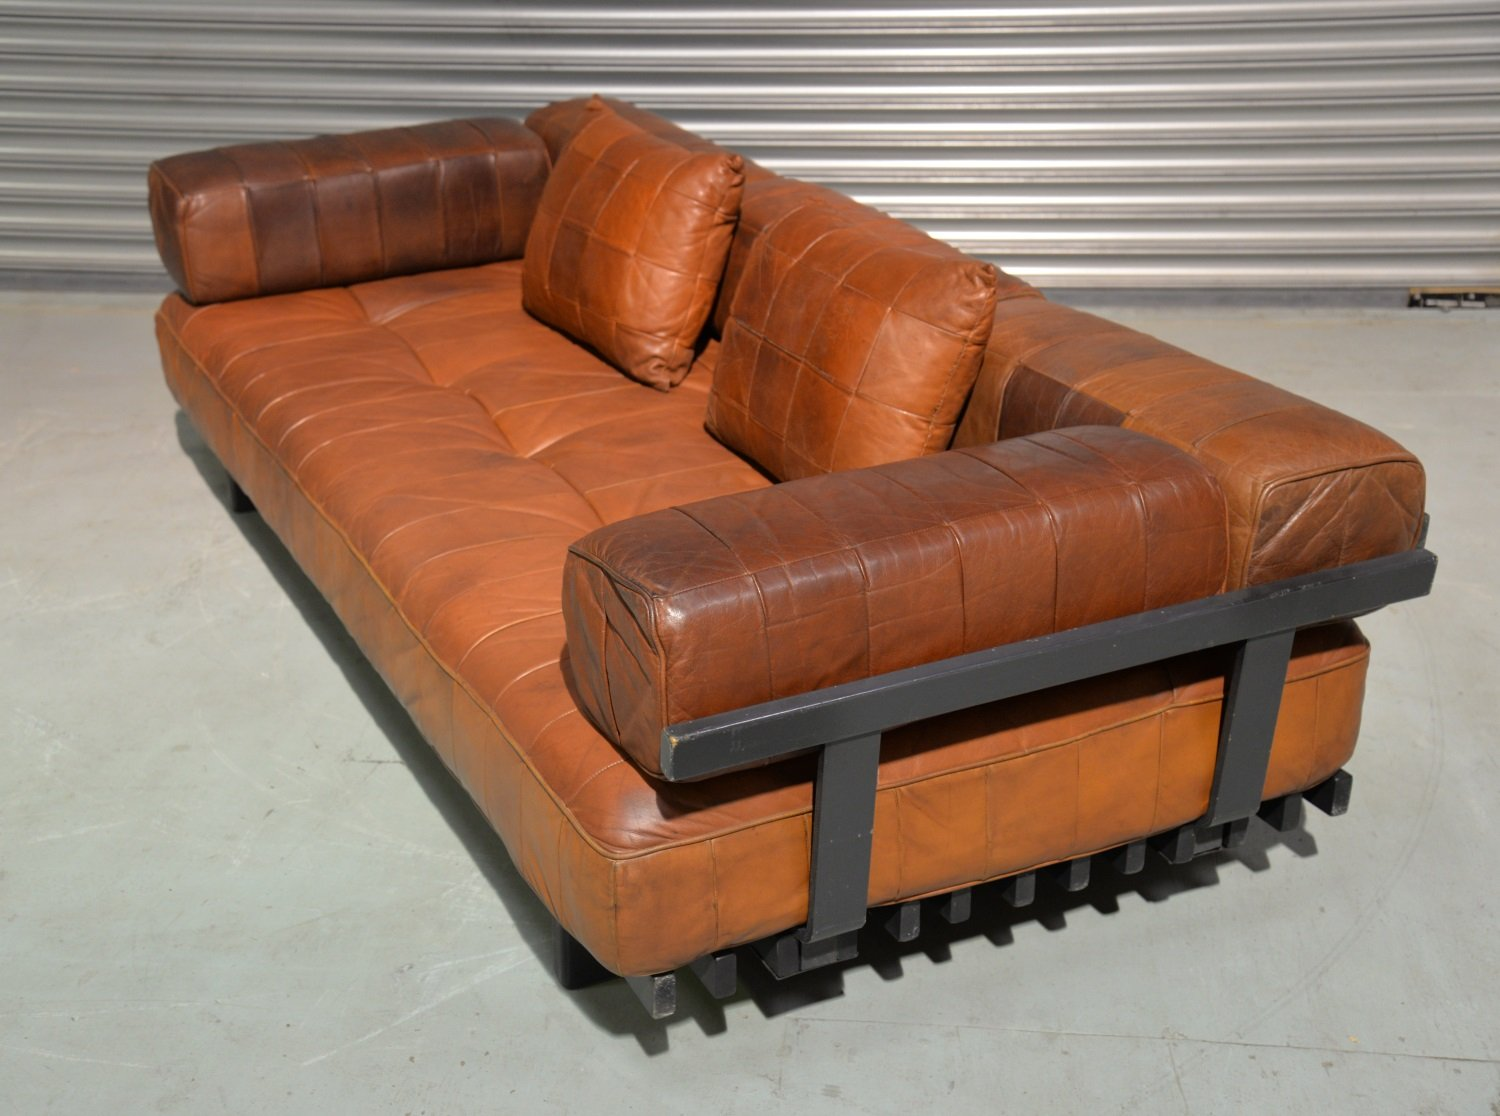 Swiss Ds 80 Leather Daybed From De Sede 1960s